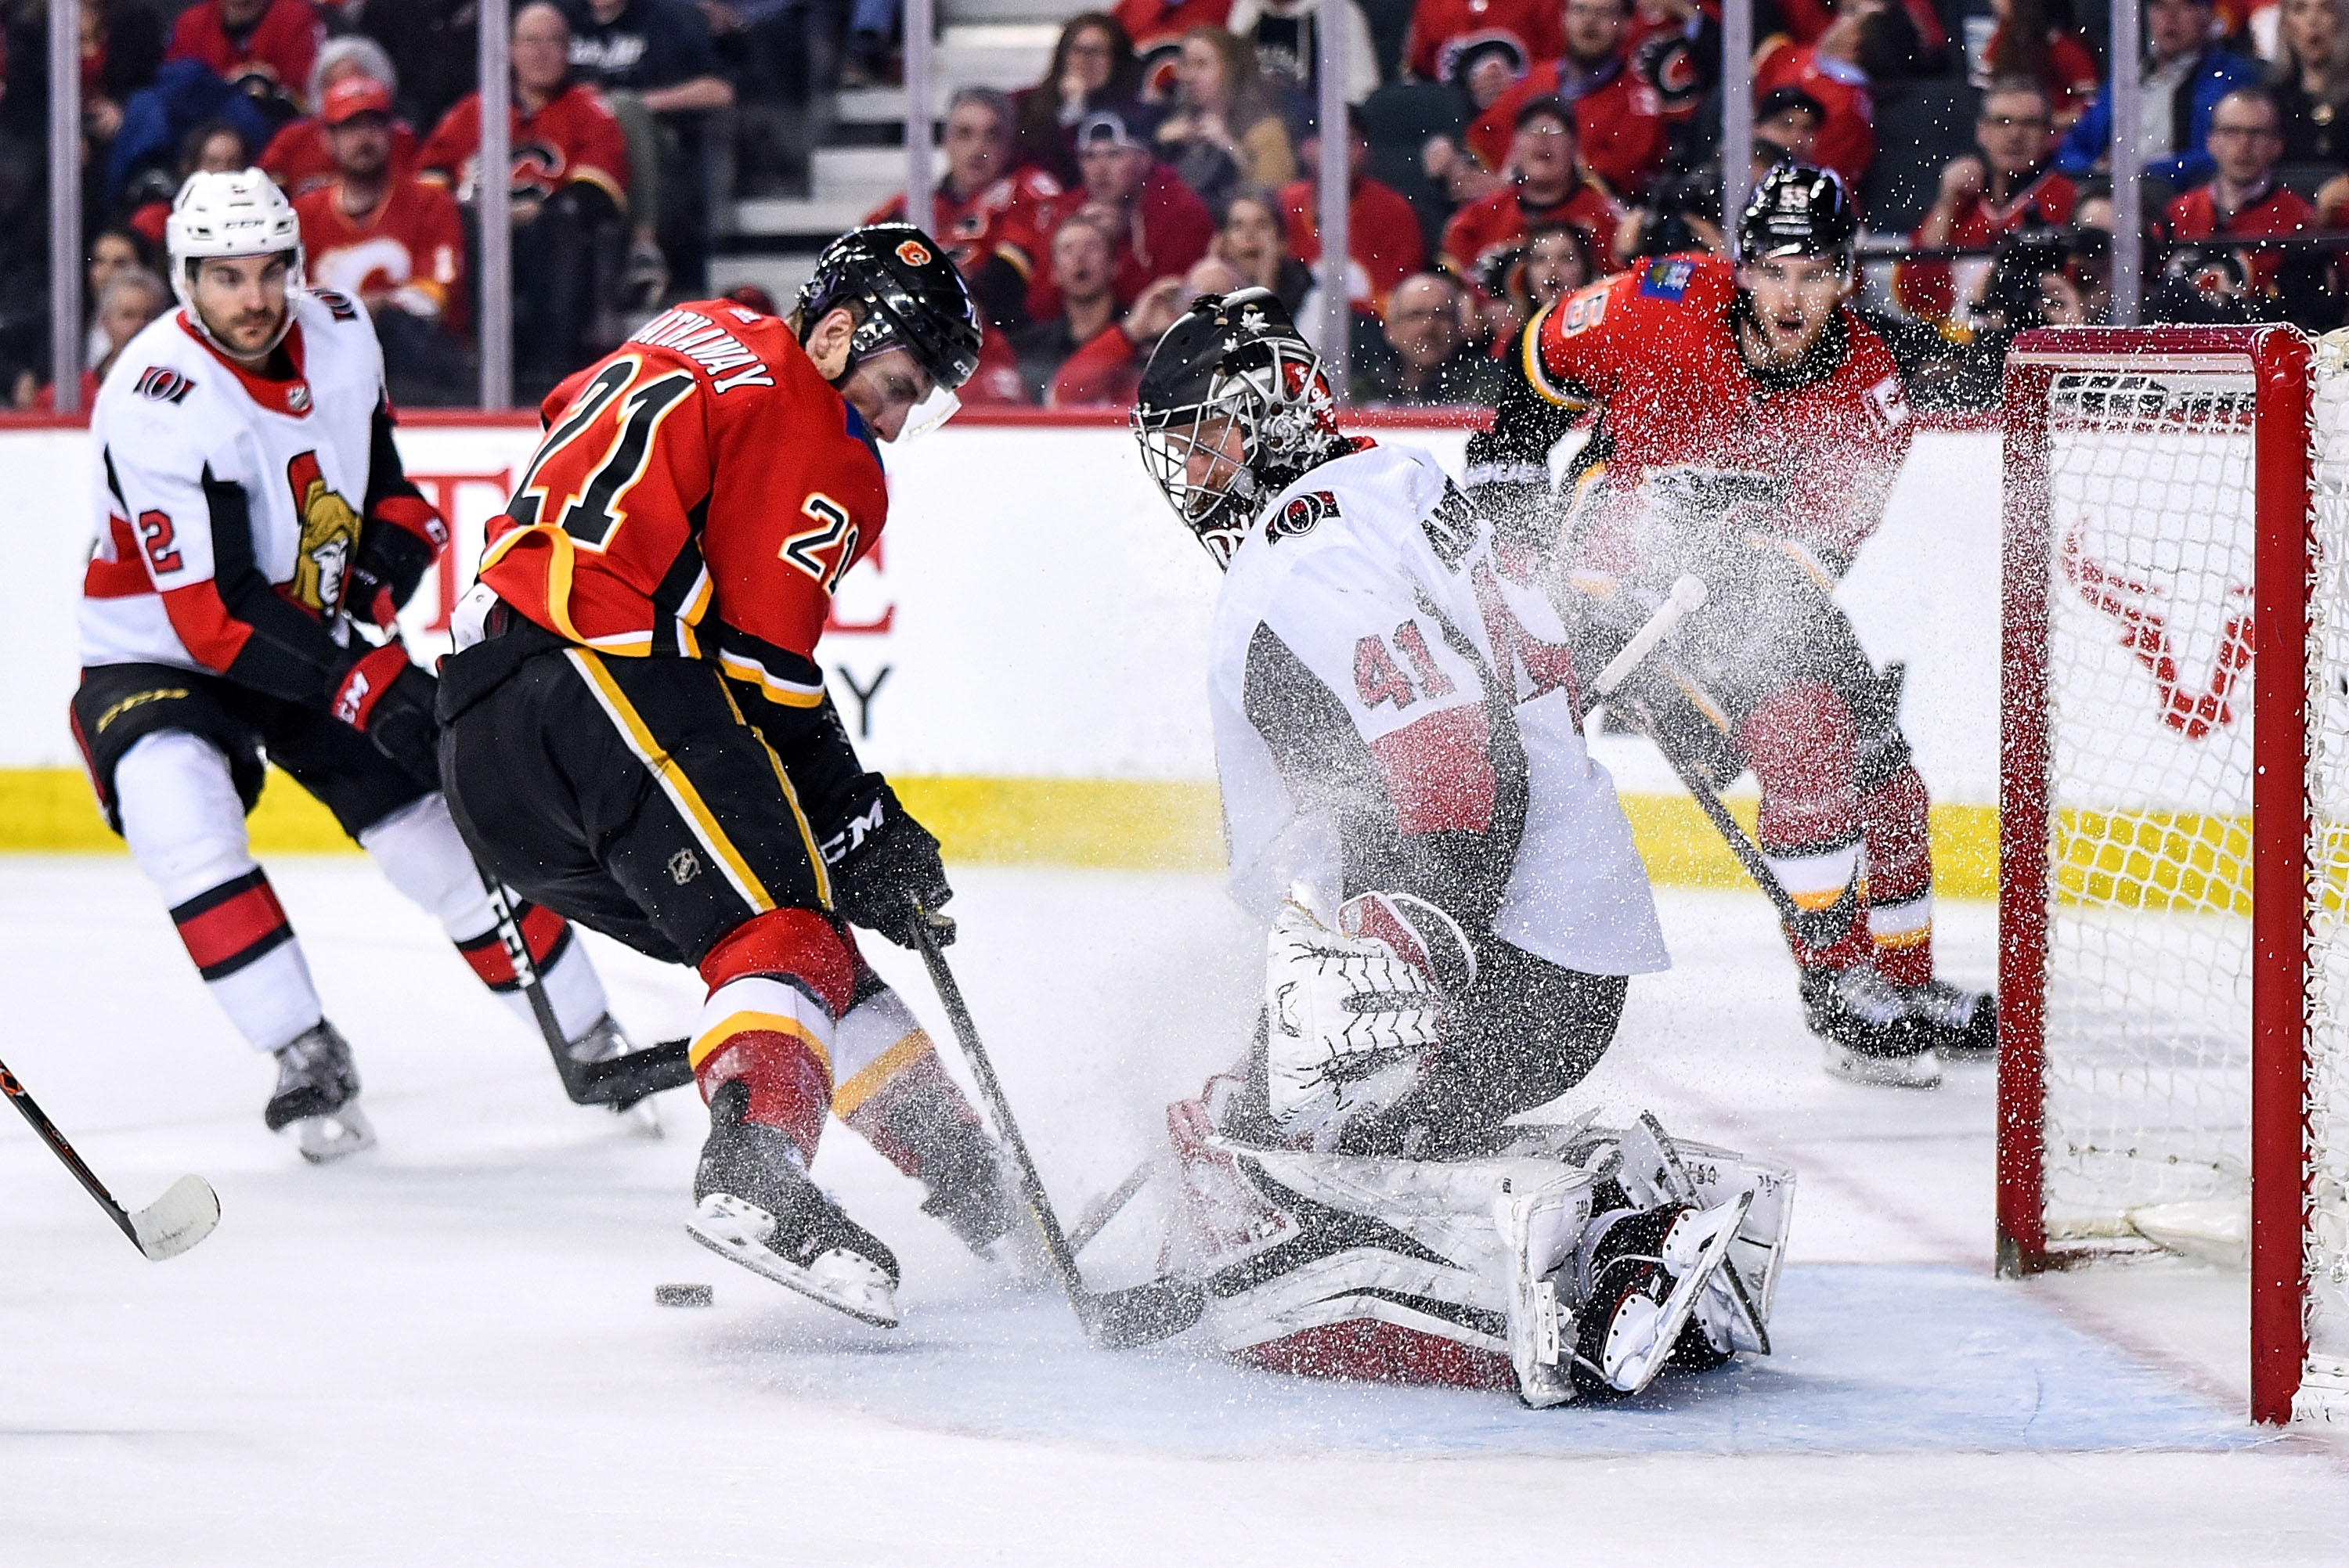 NHL: MAR 21 Senators at Flames